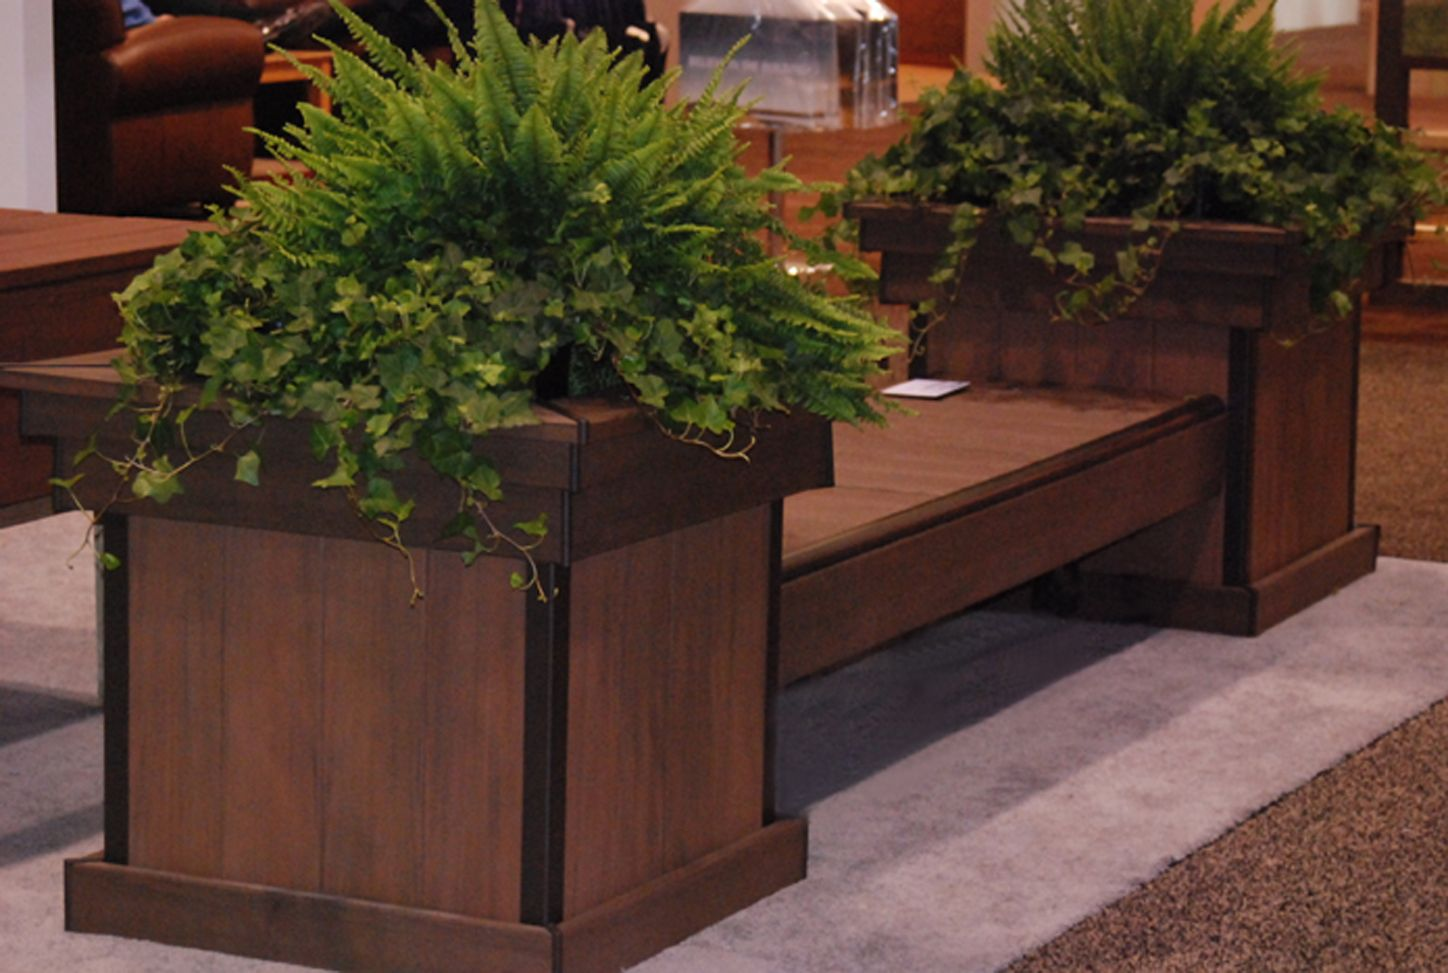 Wooden decks build a deck bench with planter boxes for Deck garden box designs